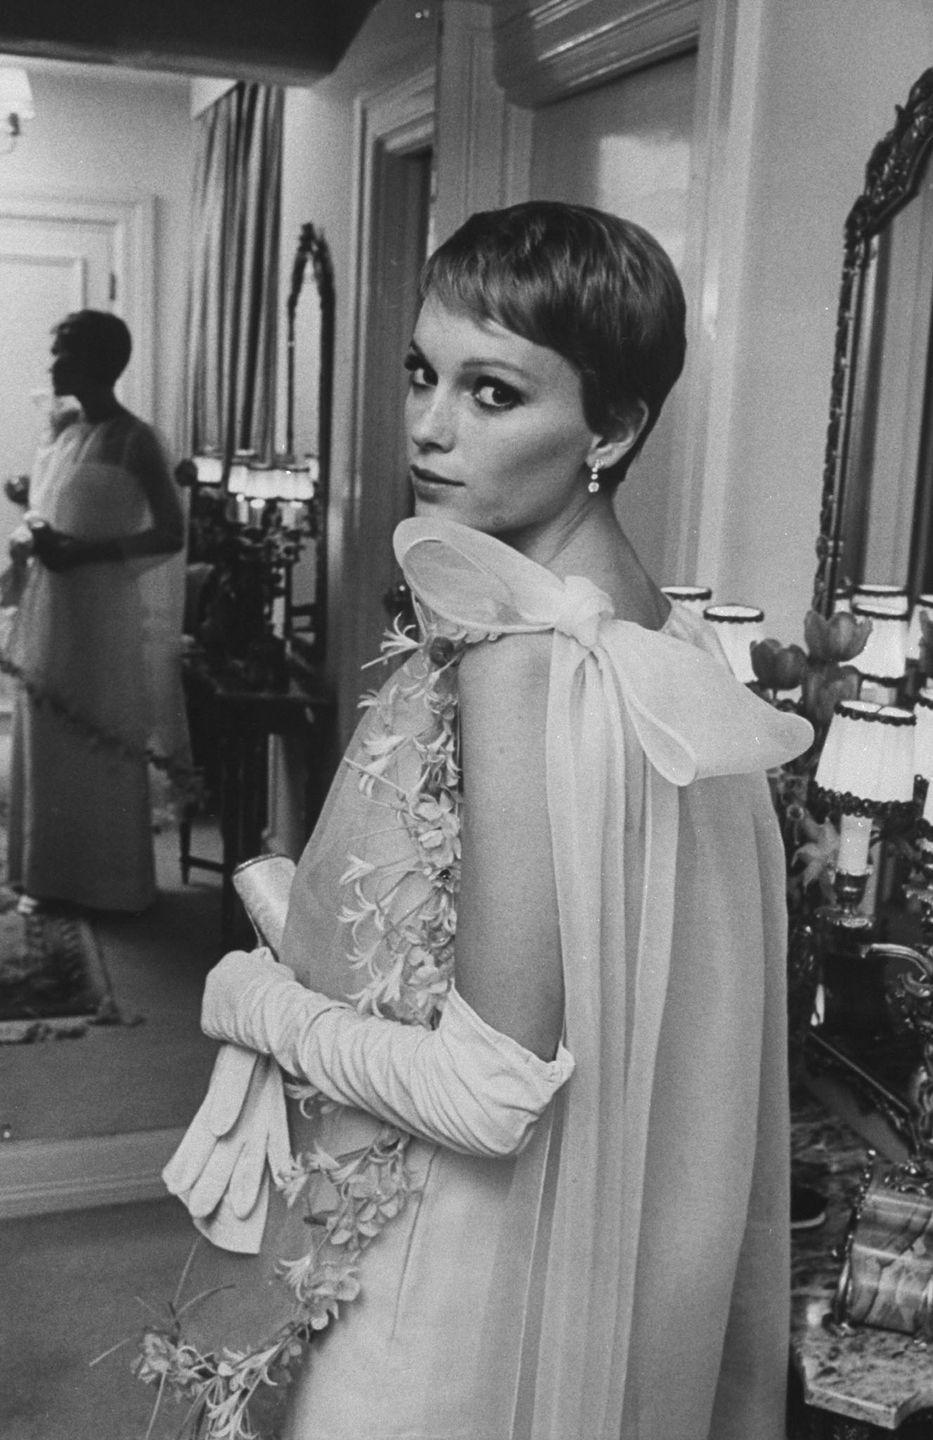 <p>From her modern pixie cut to her elegant style, Farrow was one of the decade's greatest style icons. Here, she dons a couture gown by French designer Pierre Cardin in Sinatra's New York City townhouse. </p>